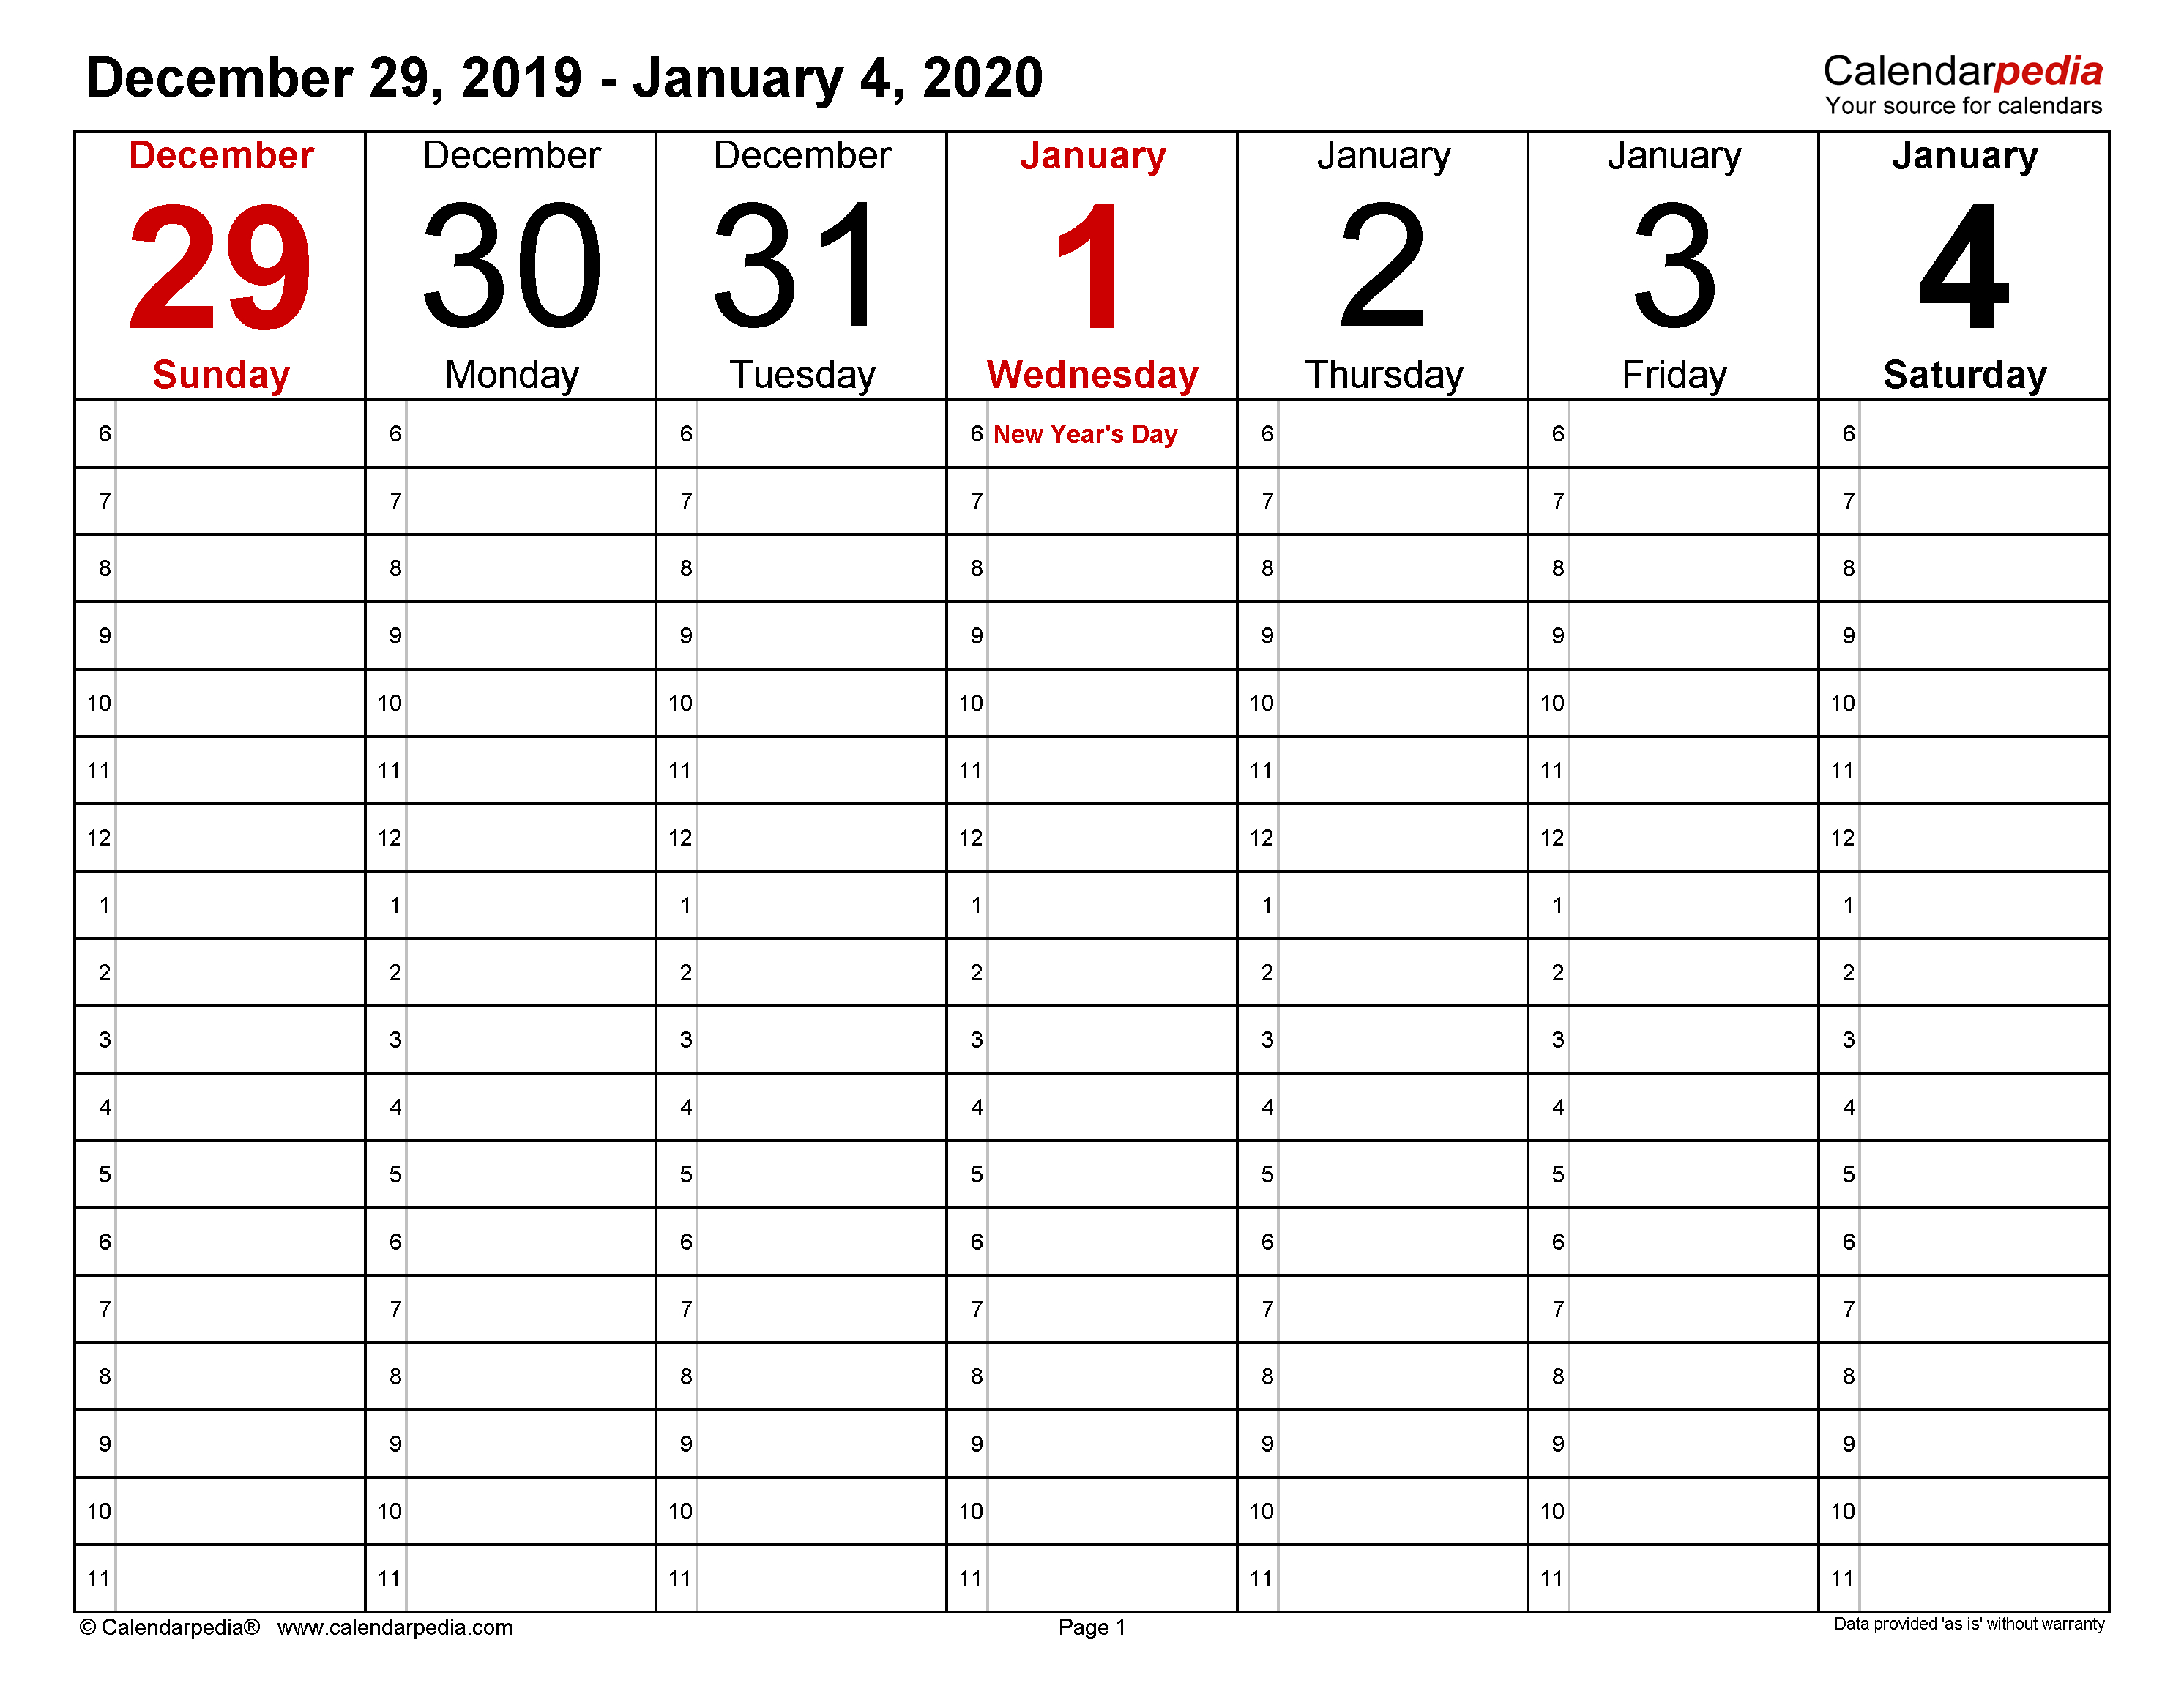 Weekly Calendars 2020 For Word - 12 Free Printable Templates in Print Free 2020 Calendar Without Downloading Weekly Writing